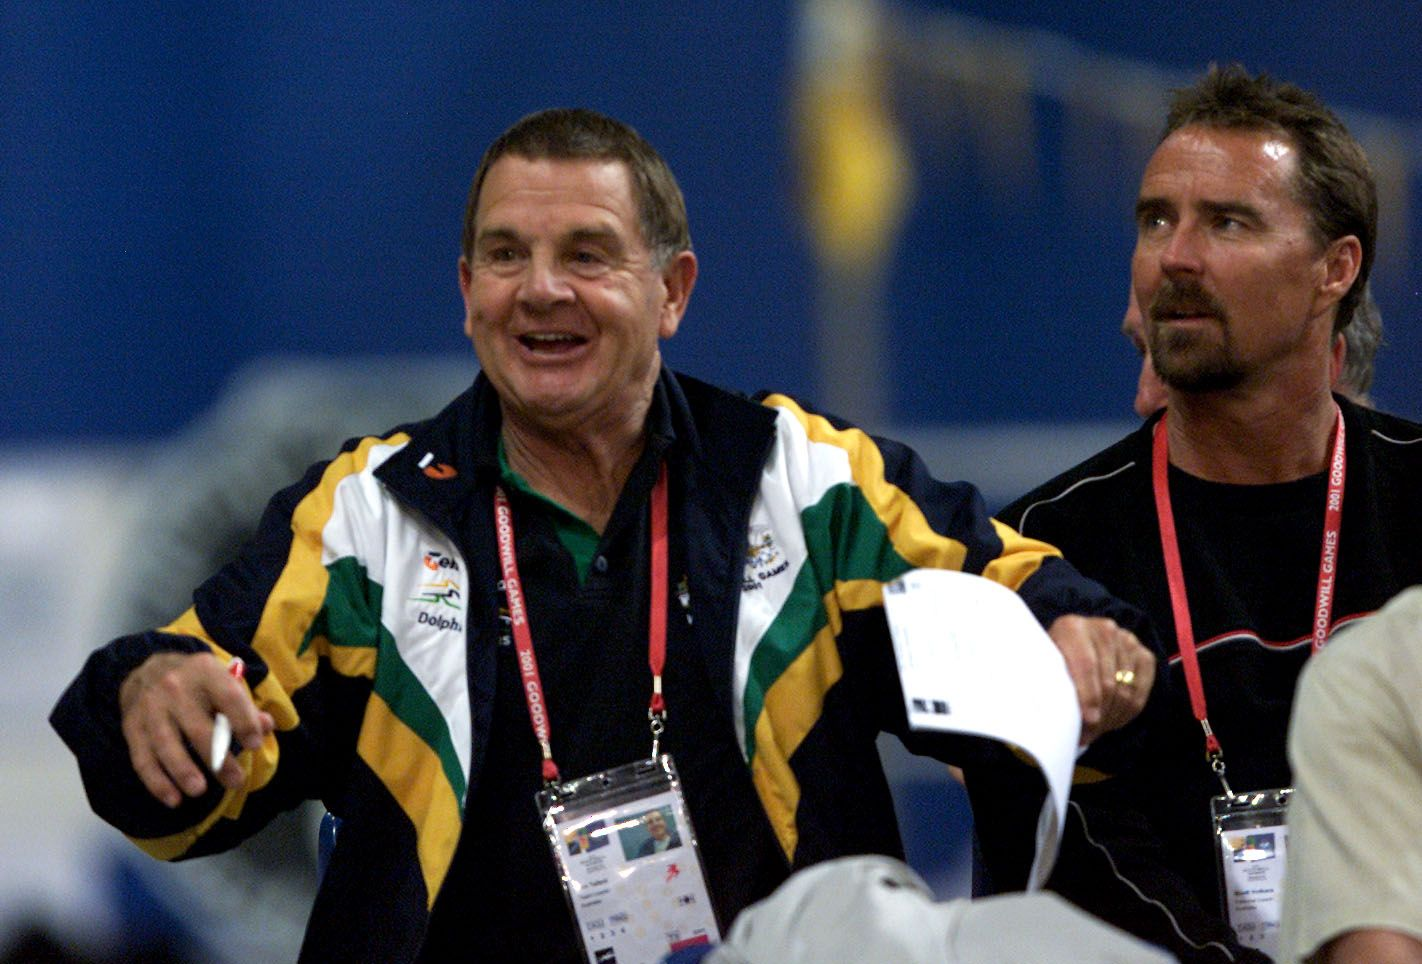 Don Talbot National Swim Coach of Australia at the Chandler Aquatic Centre during the Goodwill Games in Brisbane, Australia on  September 2, 2001. | Photo: Getty Images